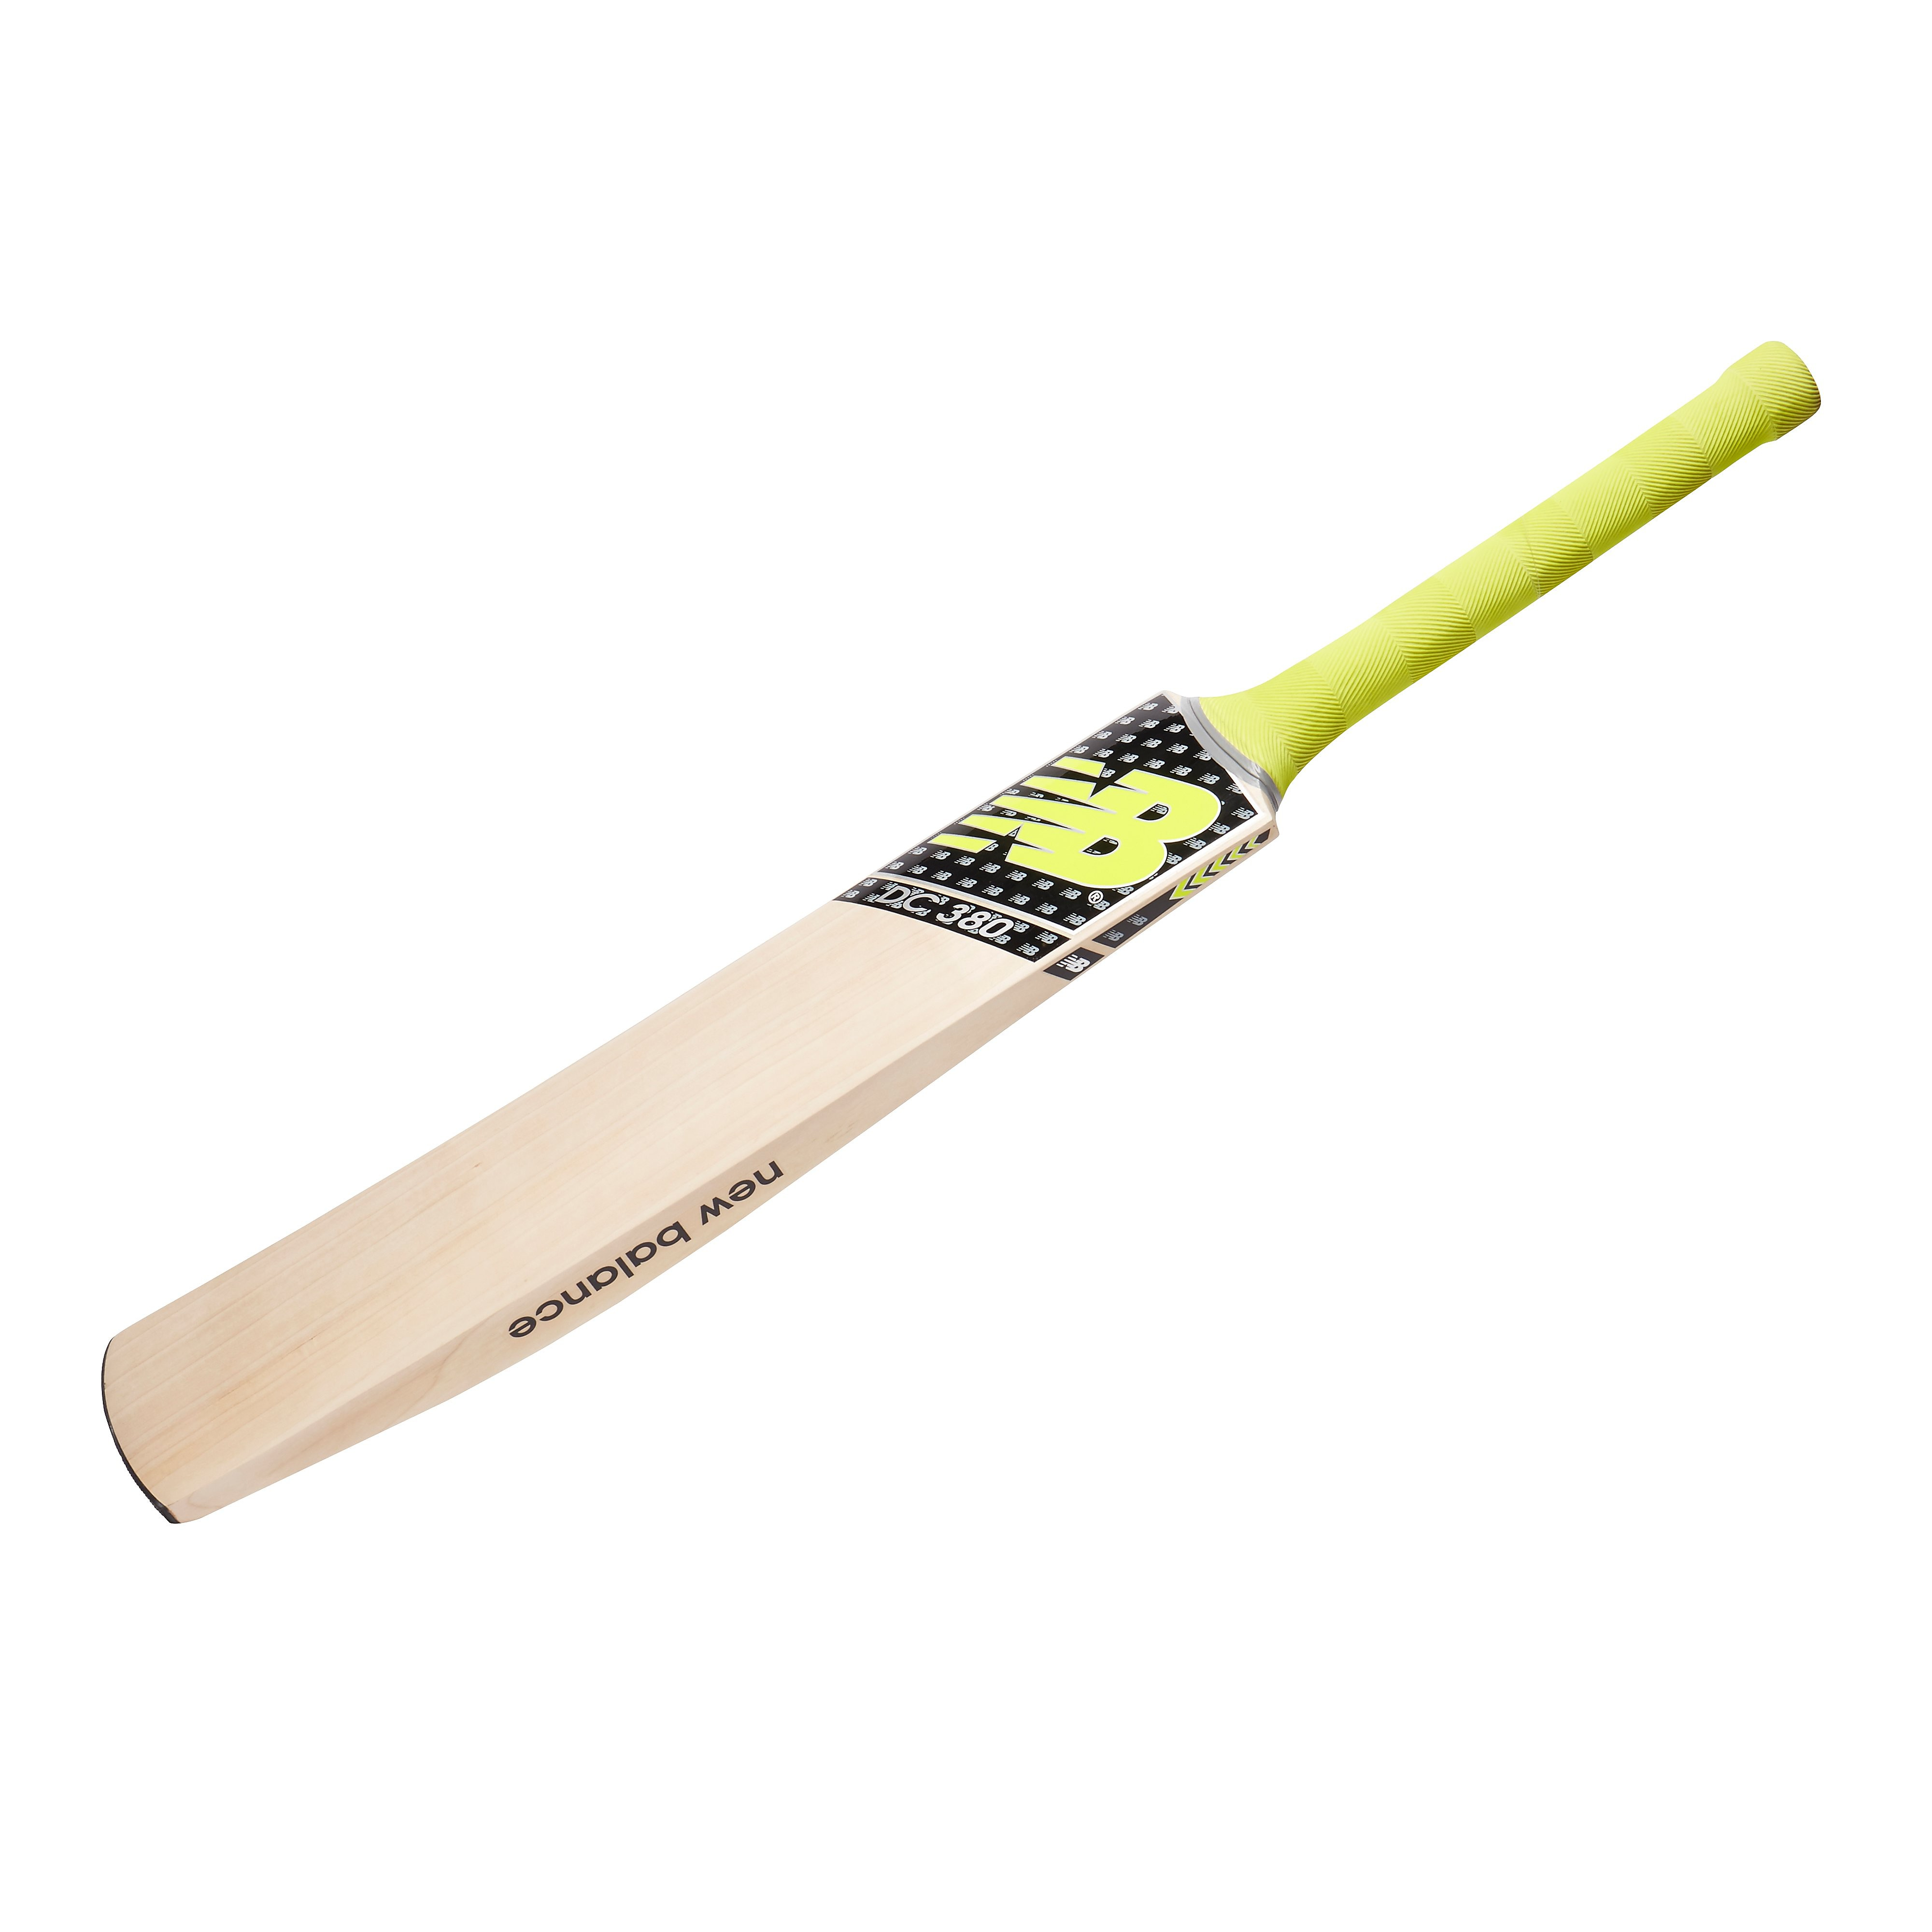 New Balance DC 380 Senior Cricket Bat